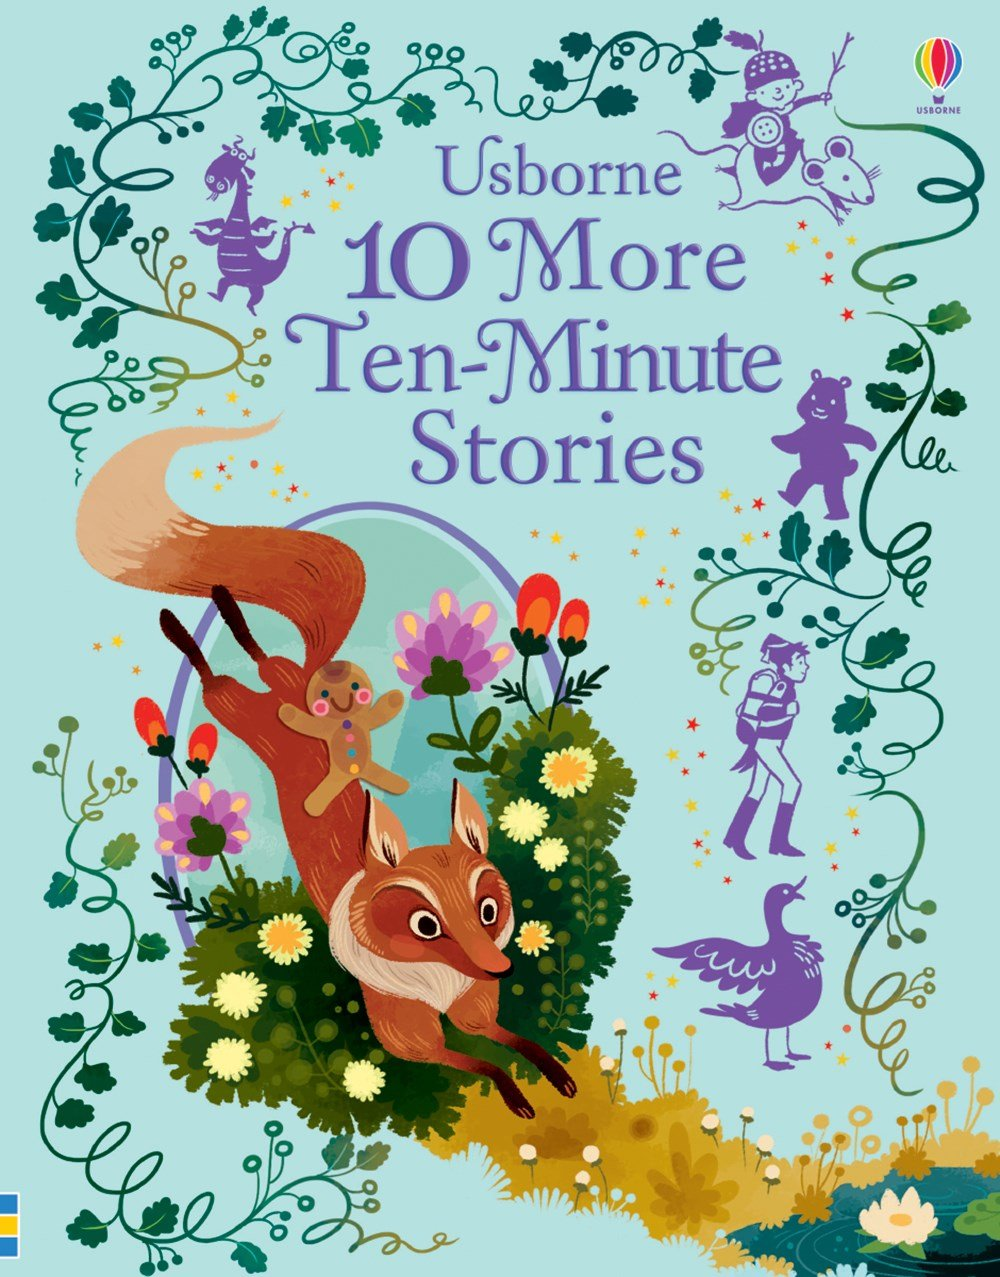 10 More 10 Minute Stories